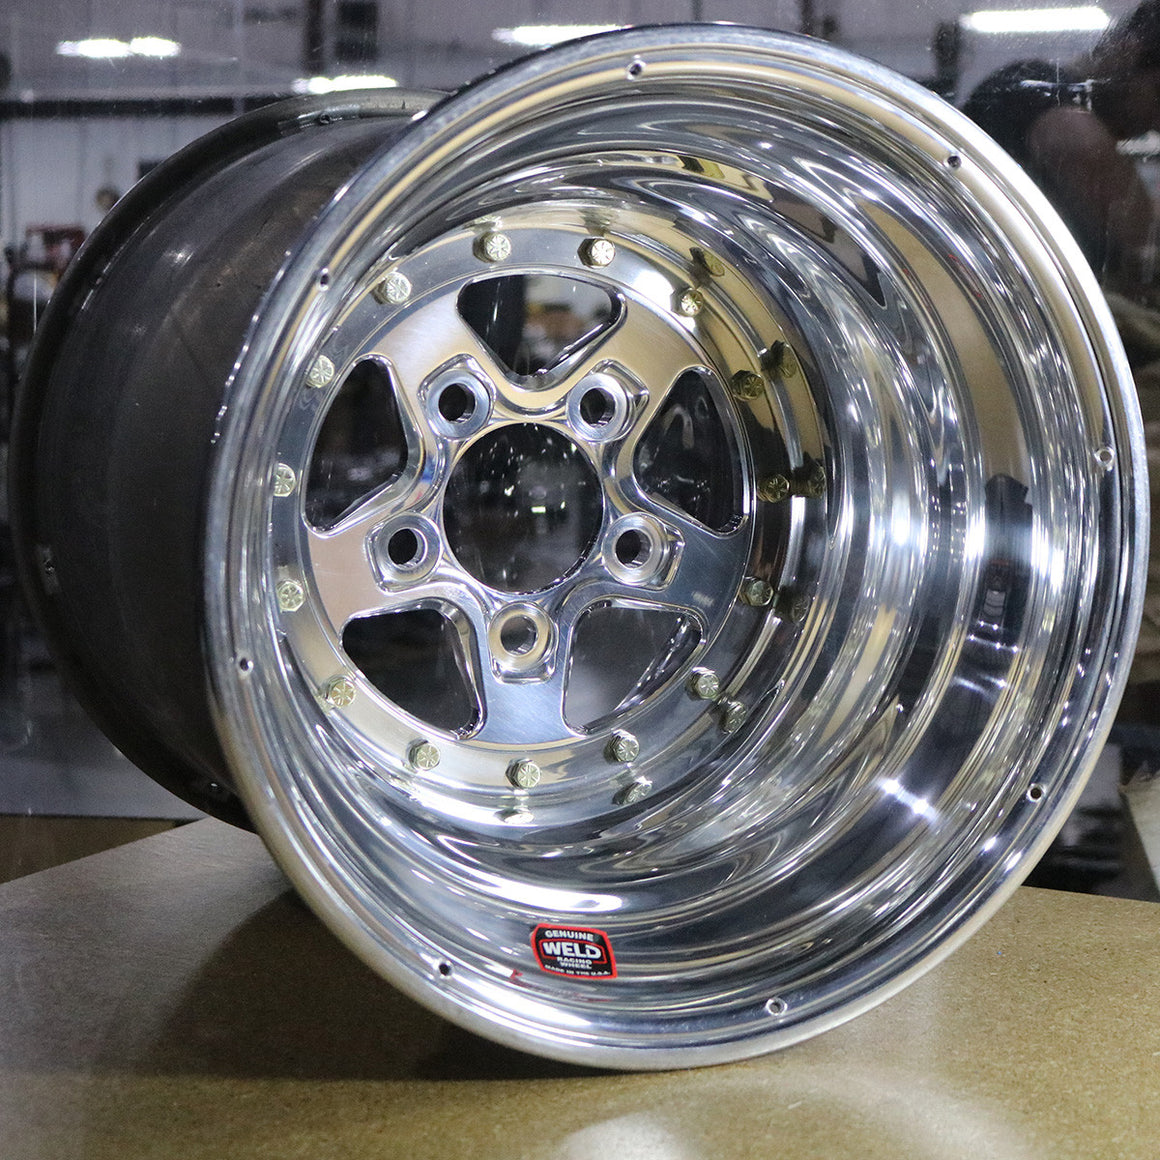 USED WELD ALUMASTAR 2.0 POLISHED RACING WHEELS DRILLED FOR RIM SCREWS